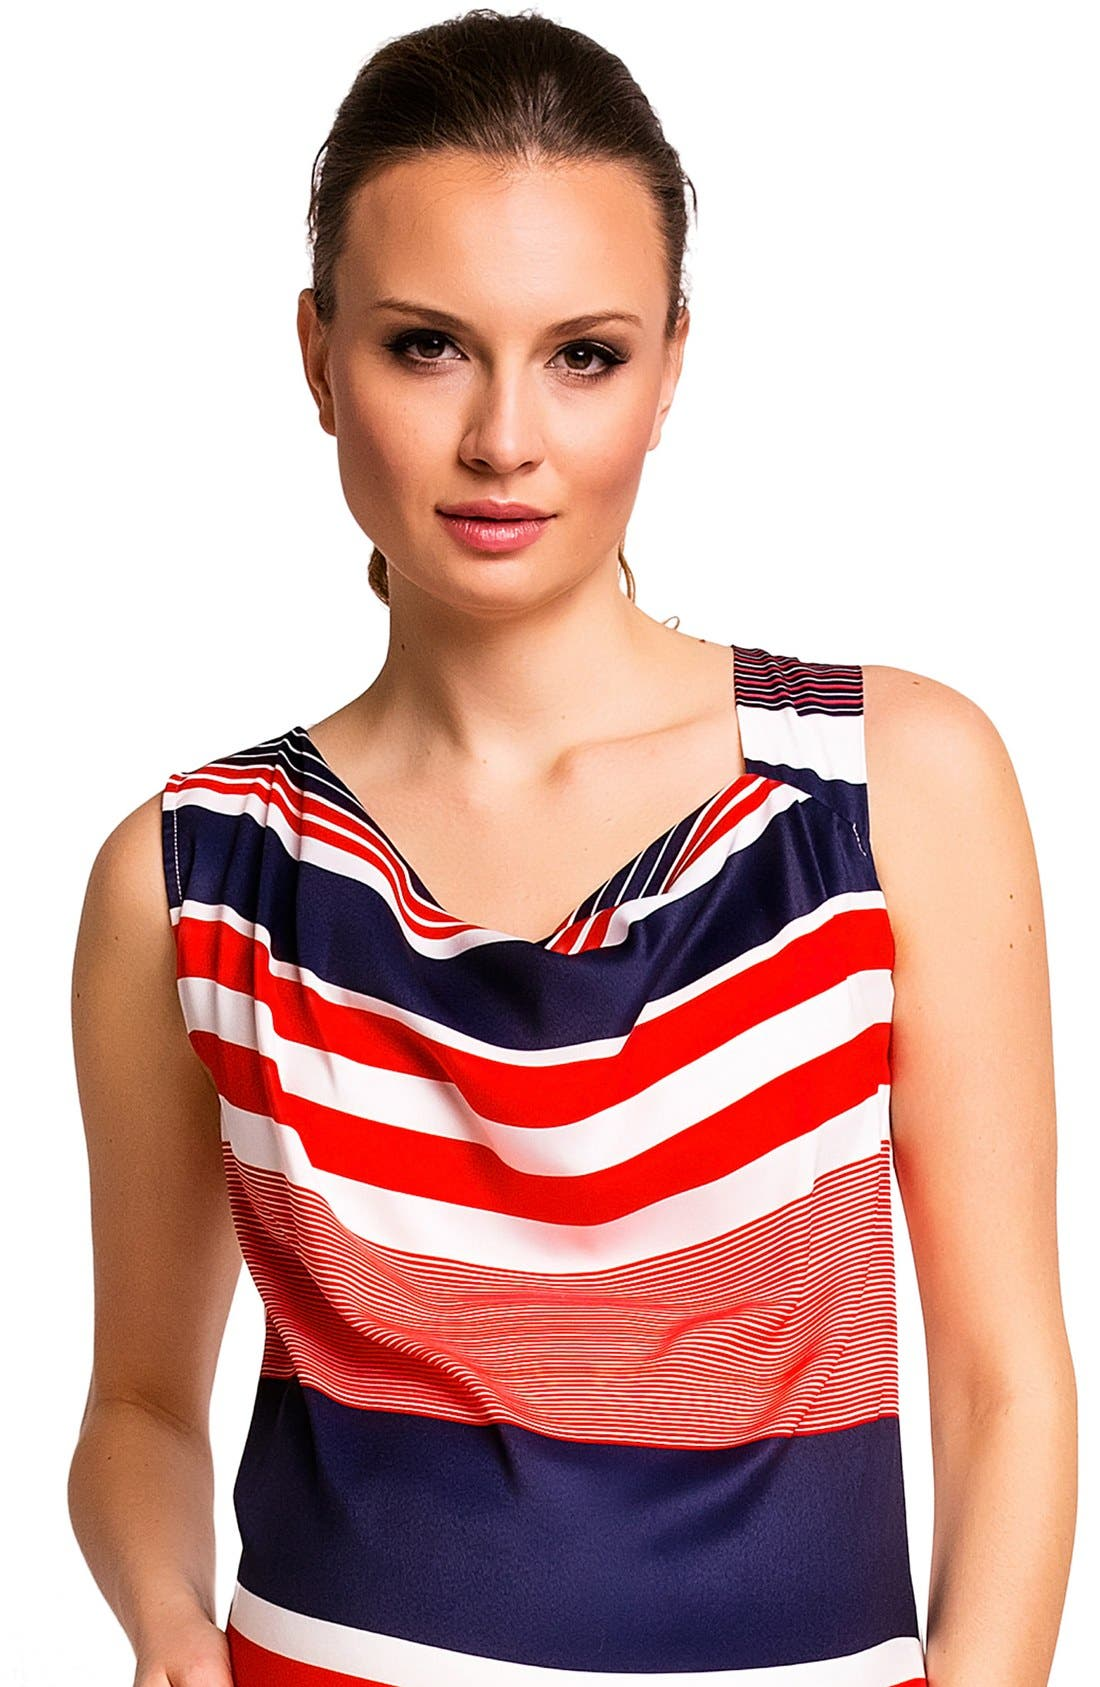 'Fialka' Maternity Top,                             Alternate thumbnail 6, color,                             RED/BLUE STRIPES